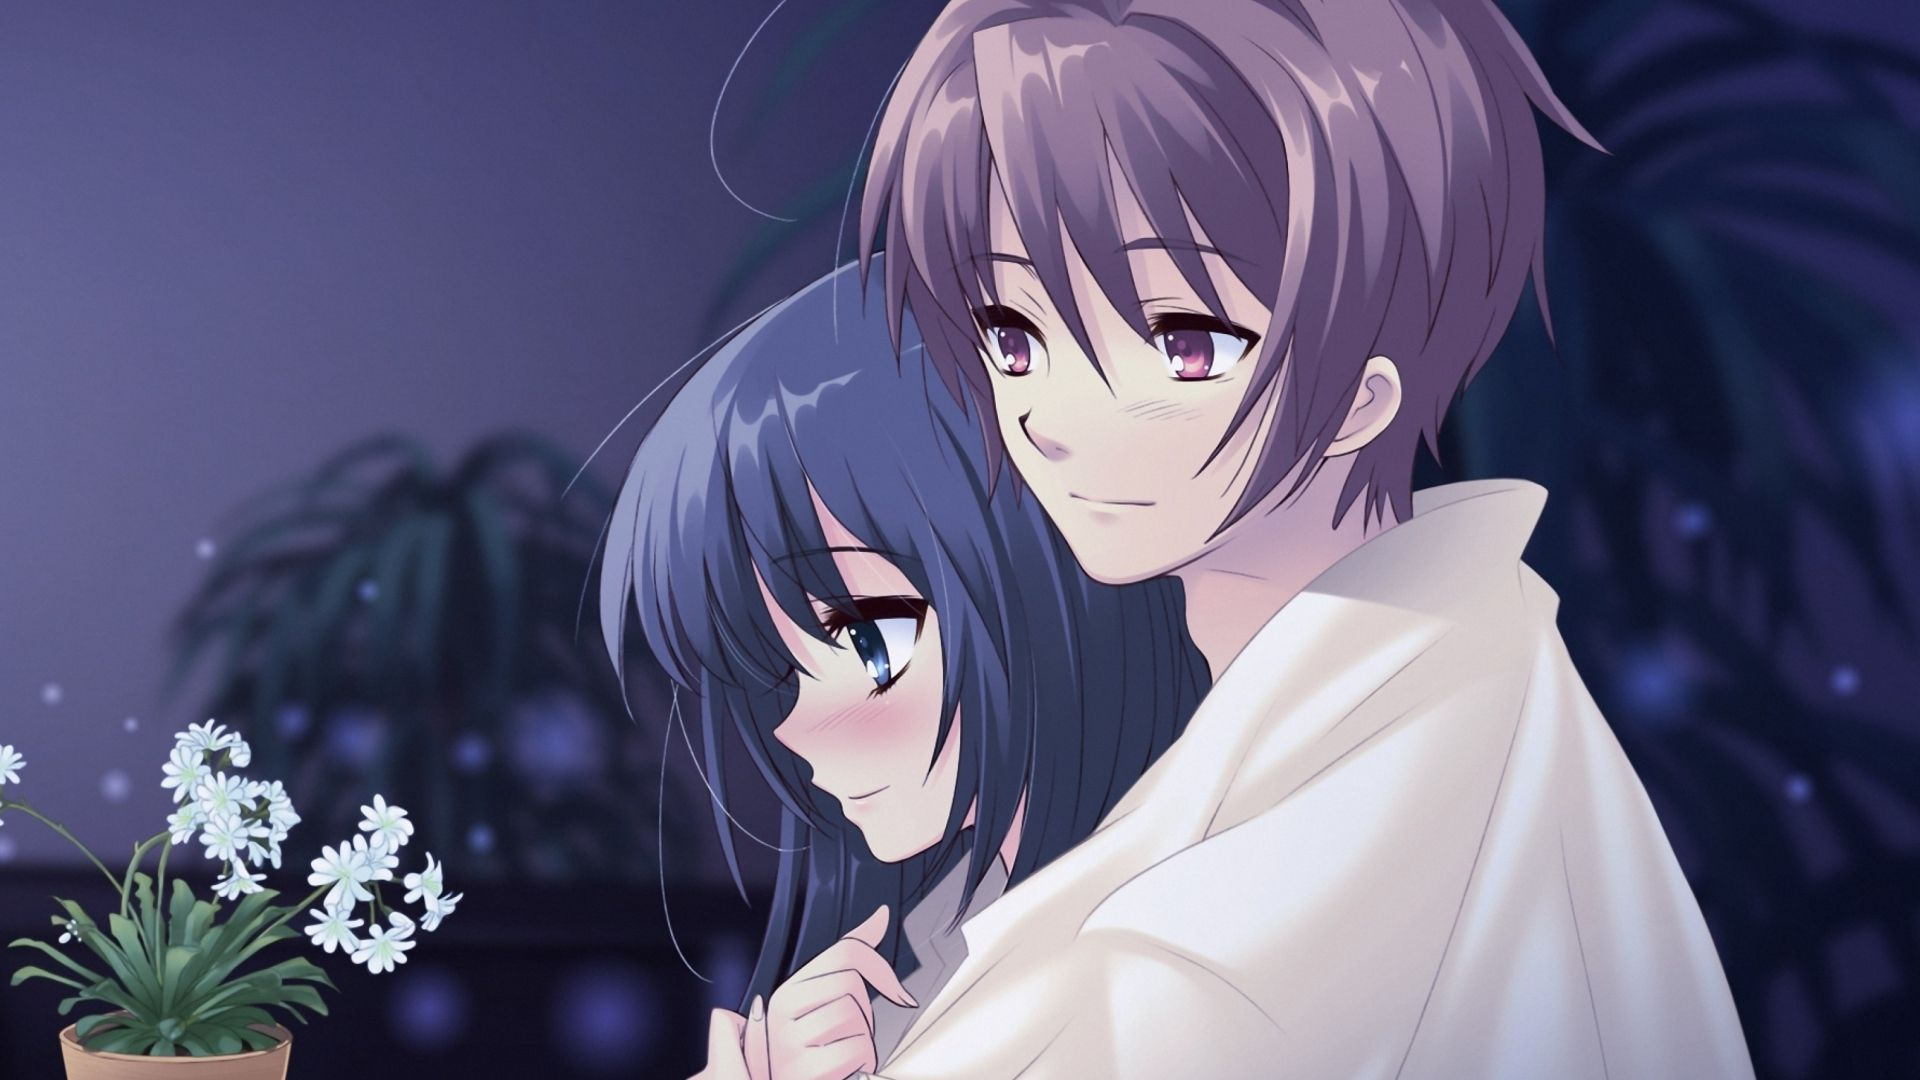 Beautiful Anime Couple Wallpaper HD Images One 1920x1200